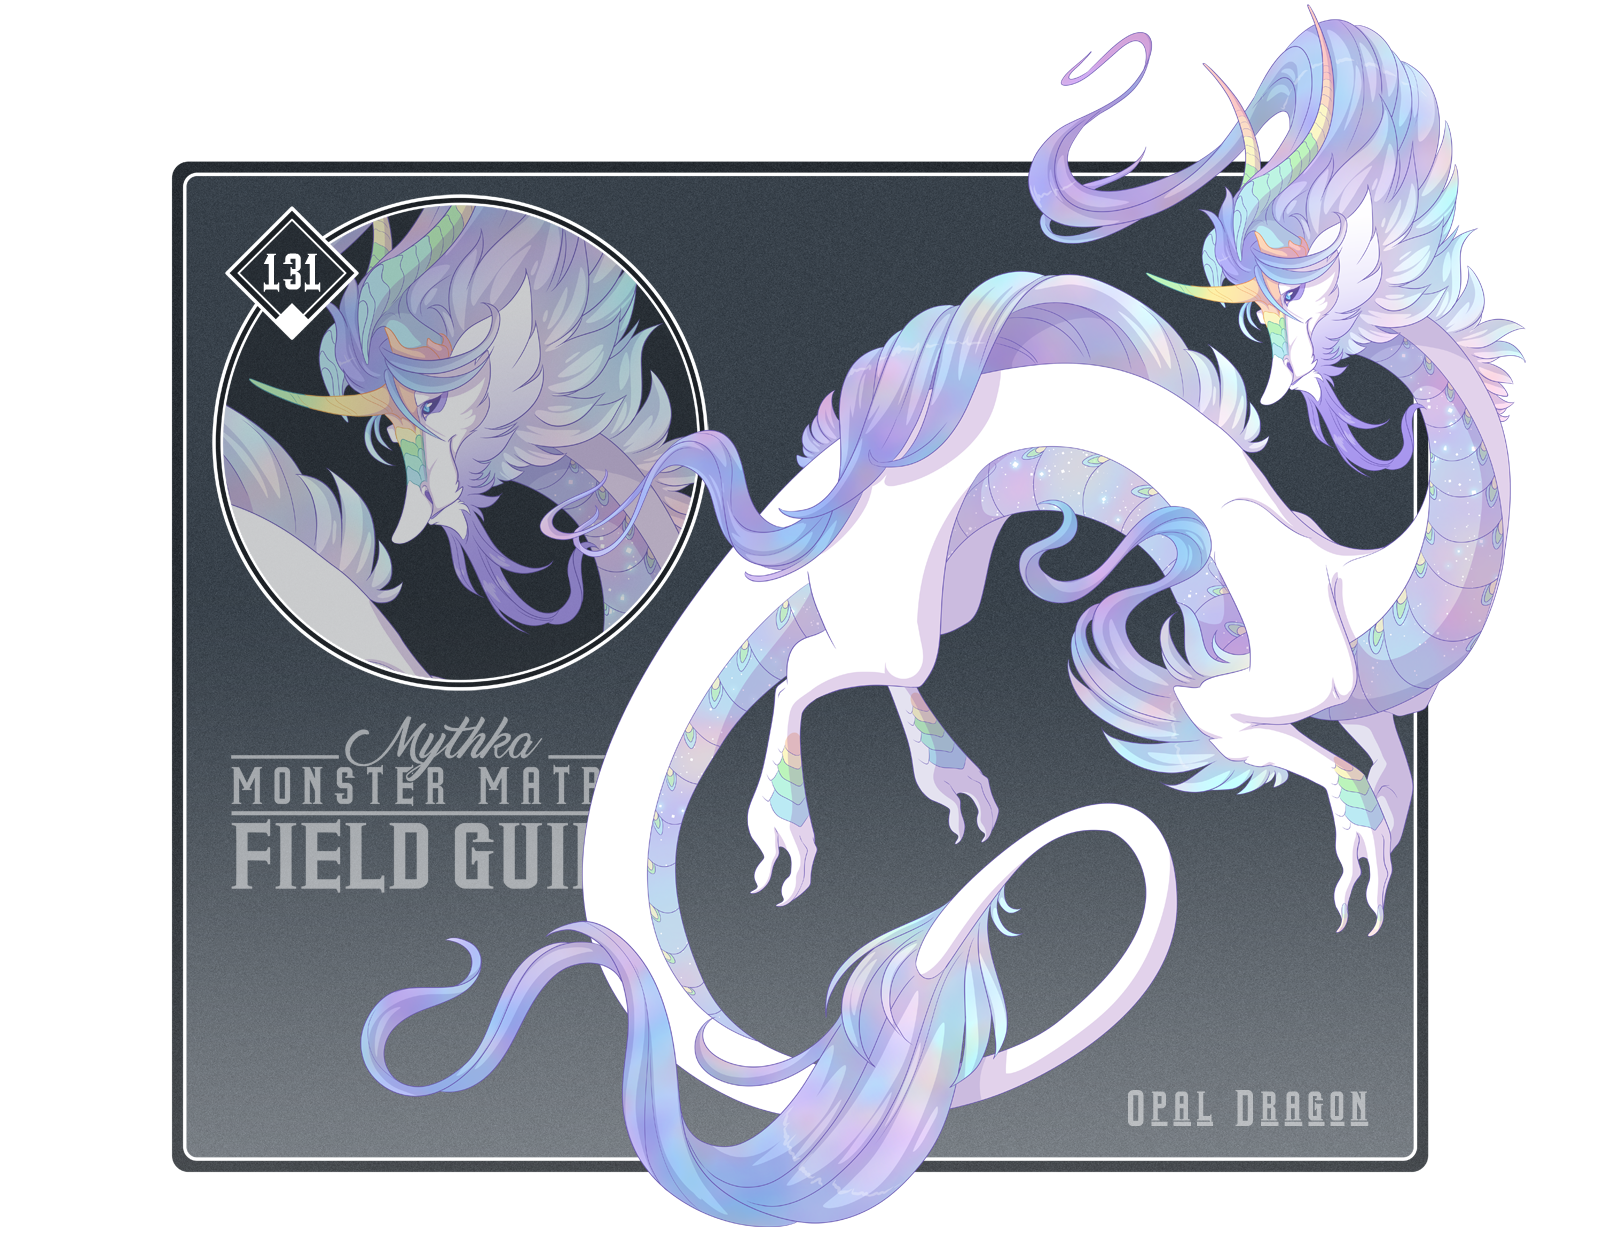 131 - Opal Dragon by Mythka